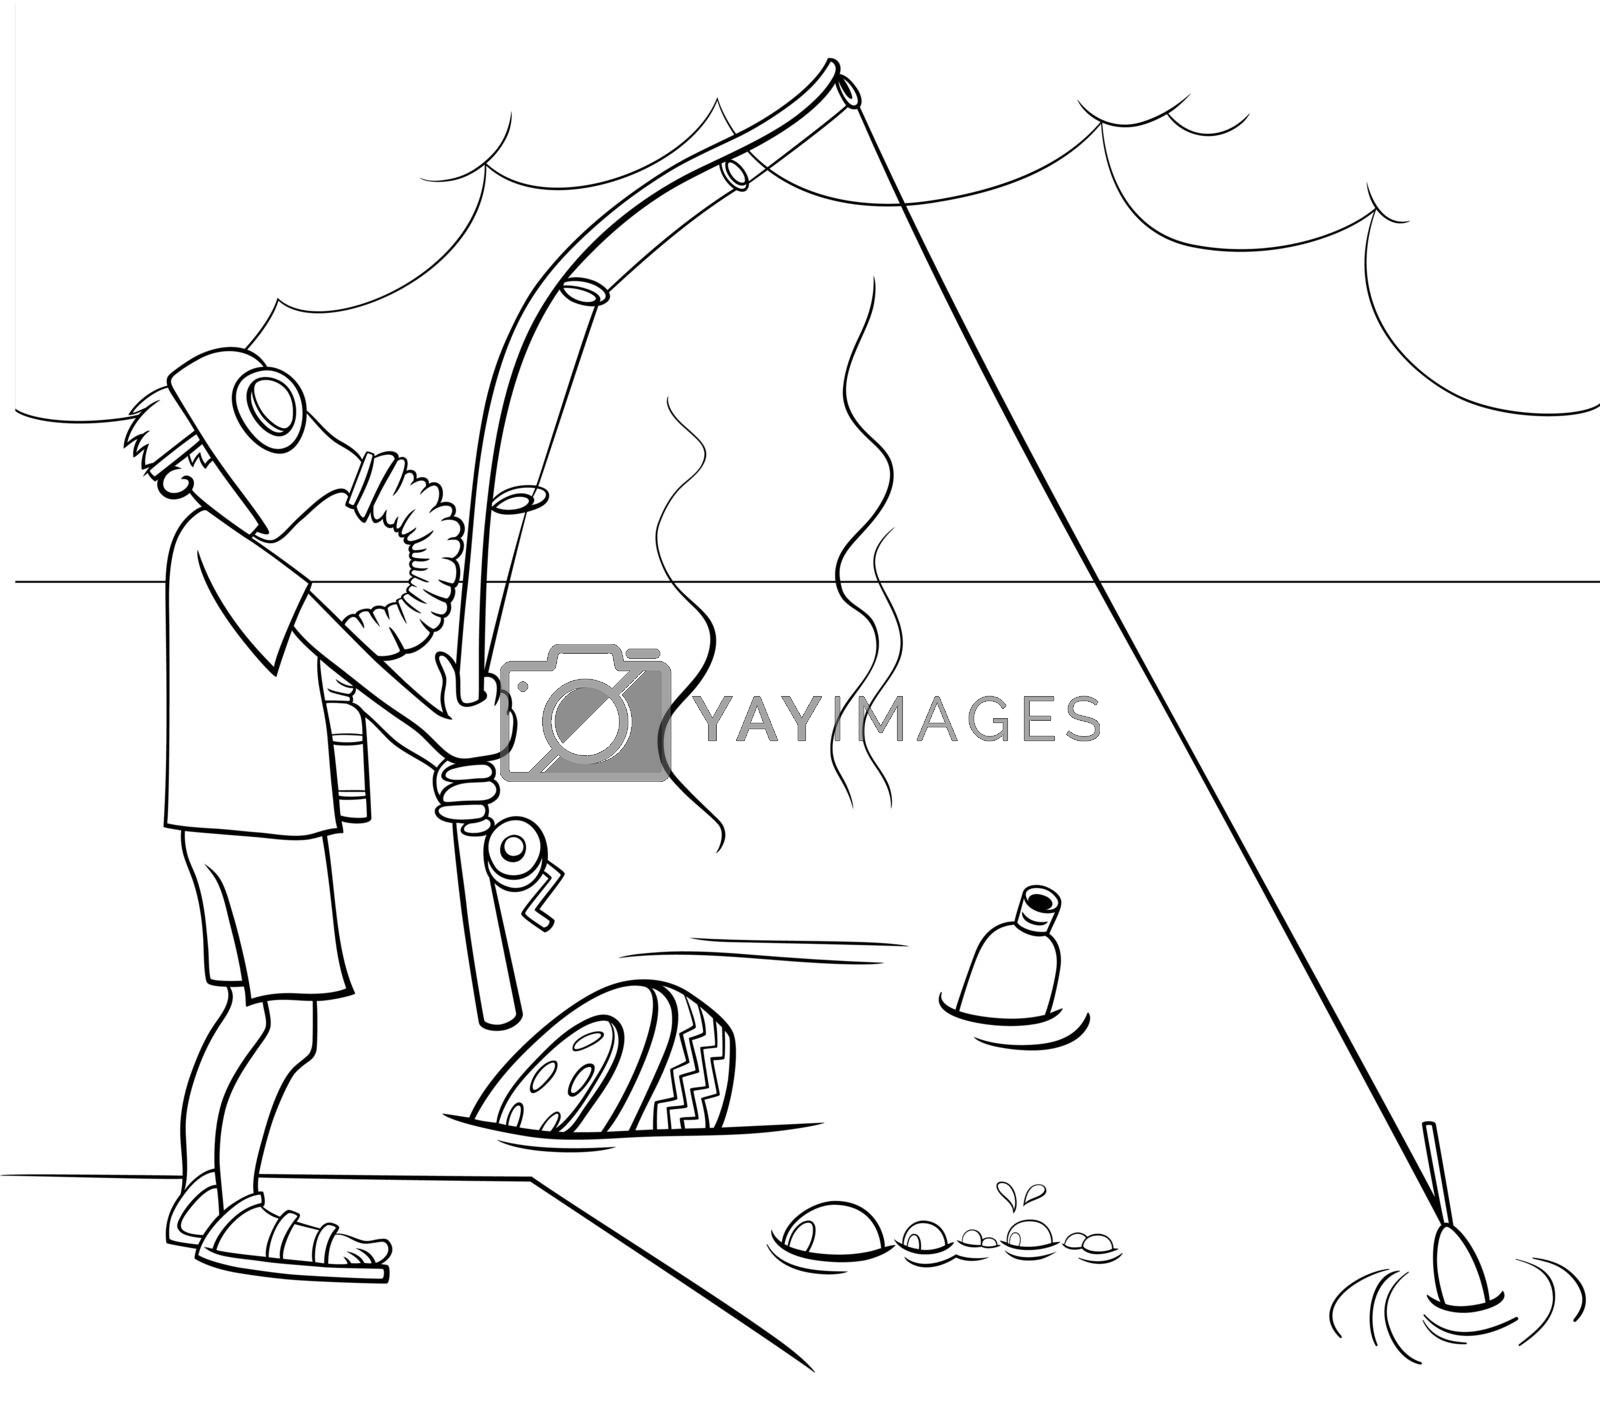 Black and white cartoon illustration of not very smart guy fishing in the sewage coloring book page